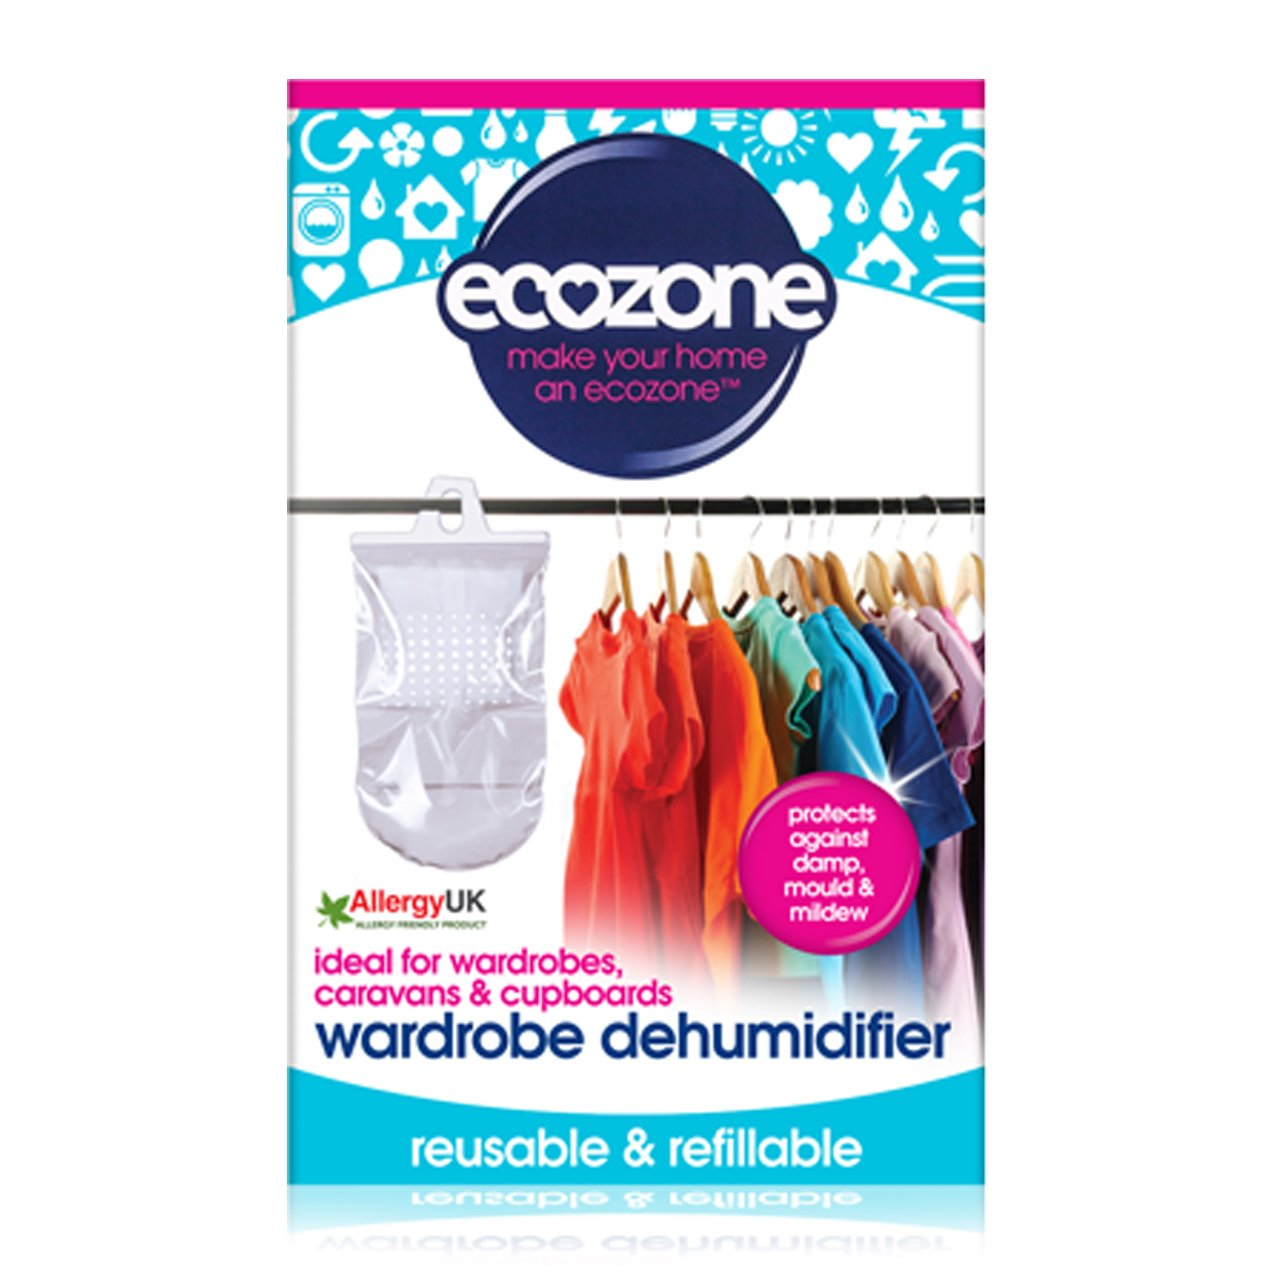 Ecozone Hanging Wardrobe Dehumidifier 532 g (Pack of 12) Ecozone Ltd 76495